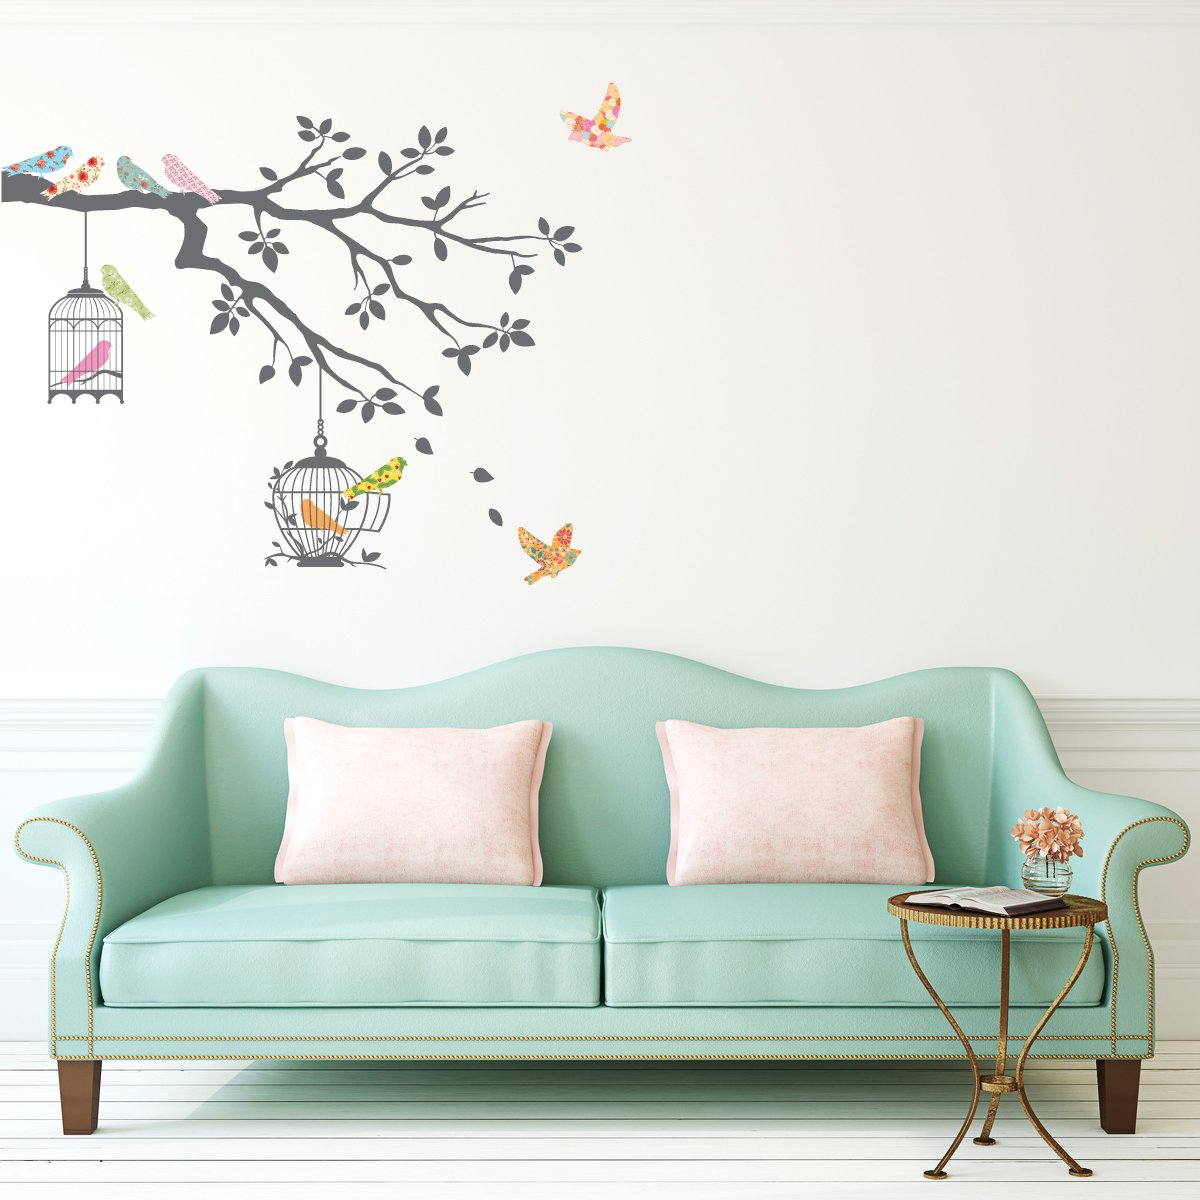 Amazoncom Decowall DW Birds On Tree Branch With Bird Cages - Wall decals birds